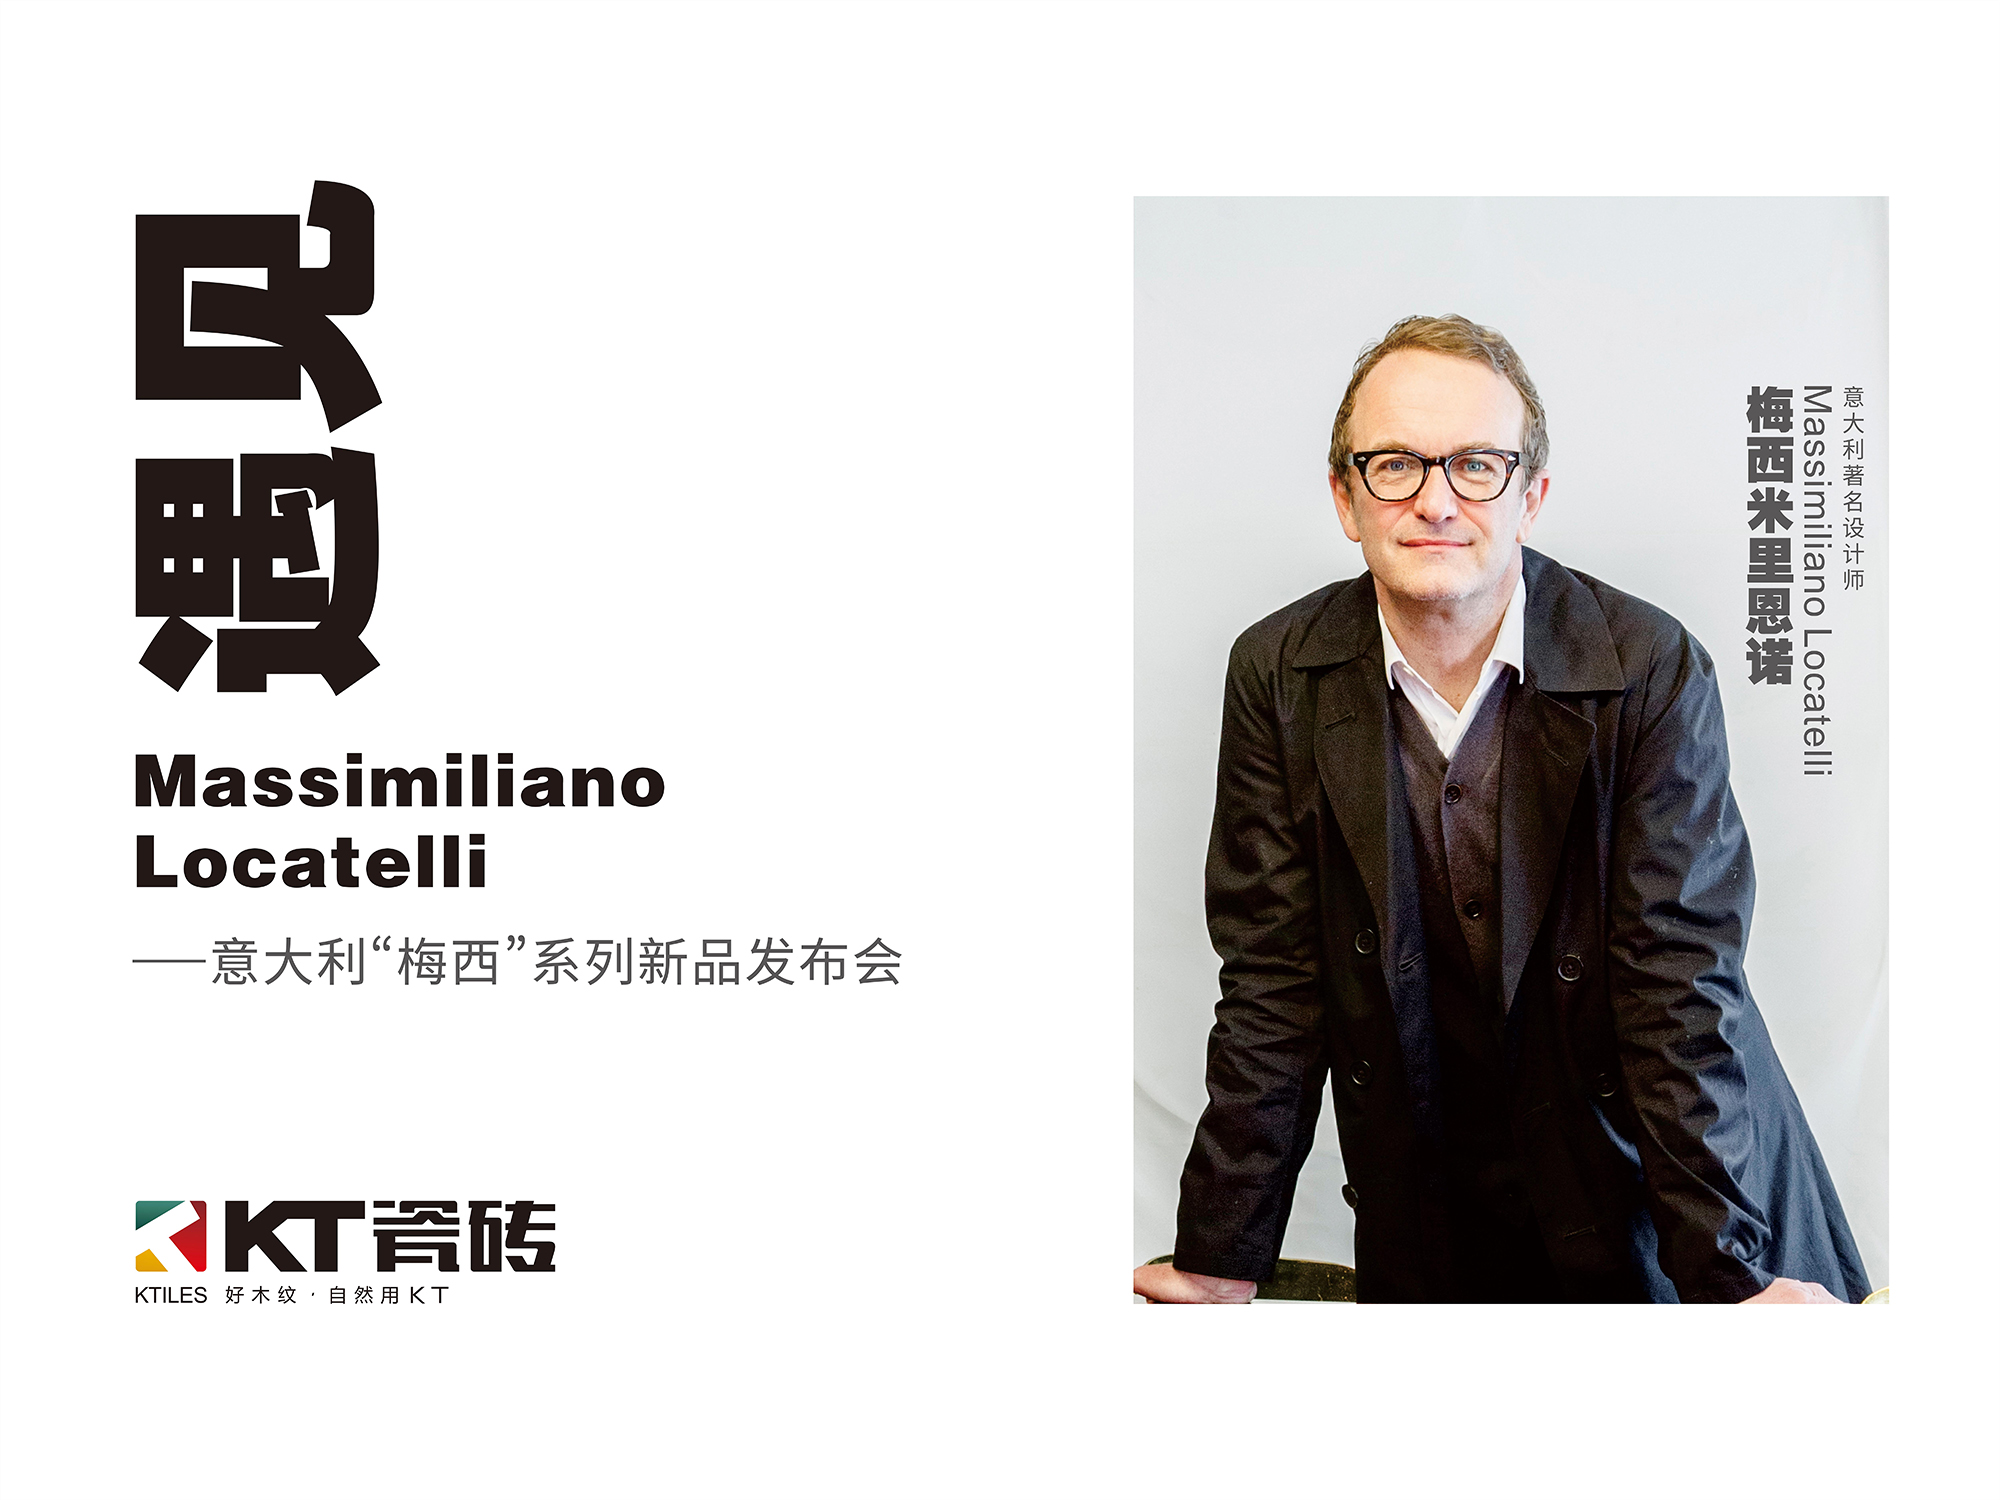 《遇见 Massimiliano Locatelli》,10月16日,KT瓷砖见!